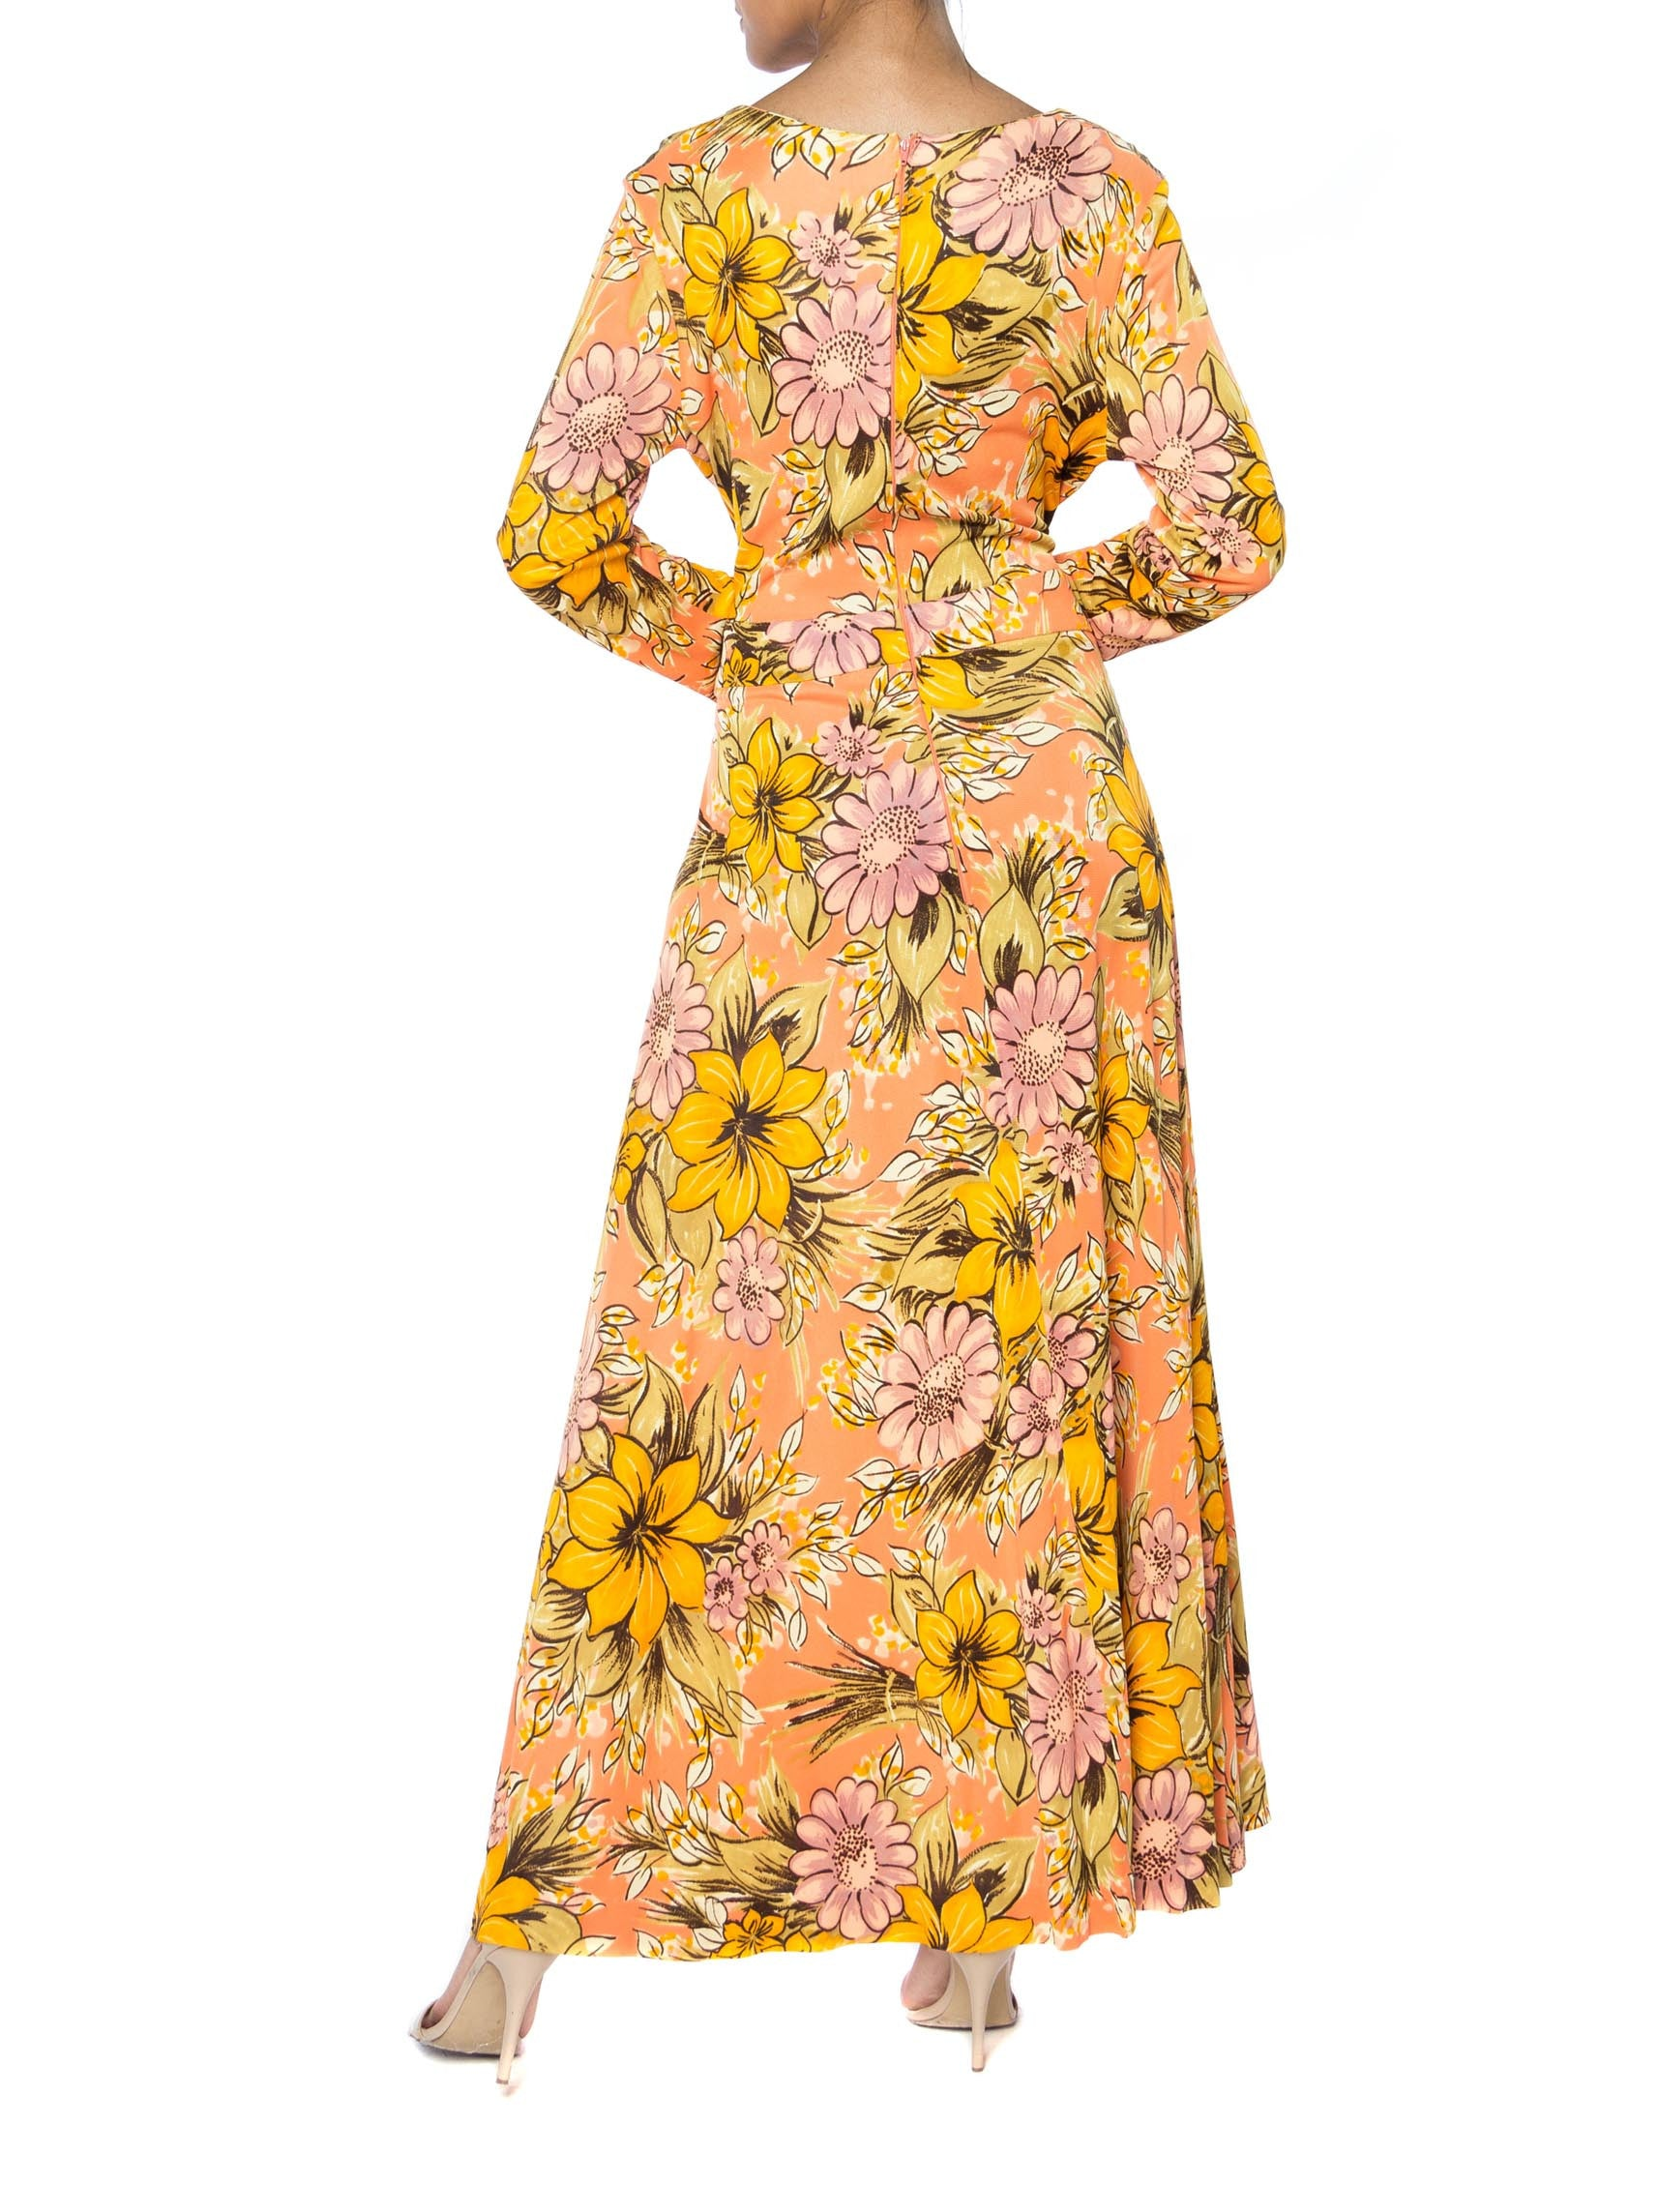 1960S AVALON Orange Polyester Long Floral Print Dress